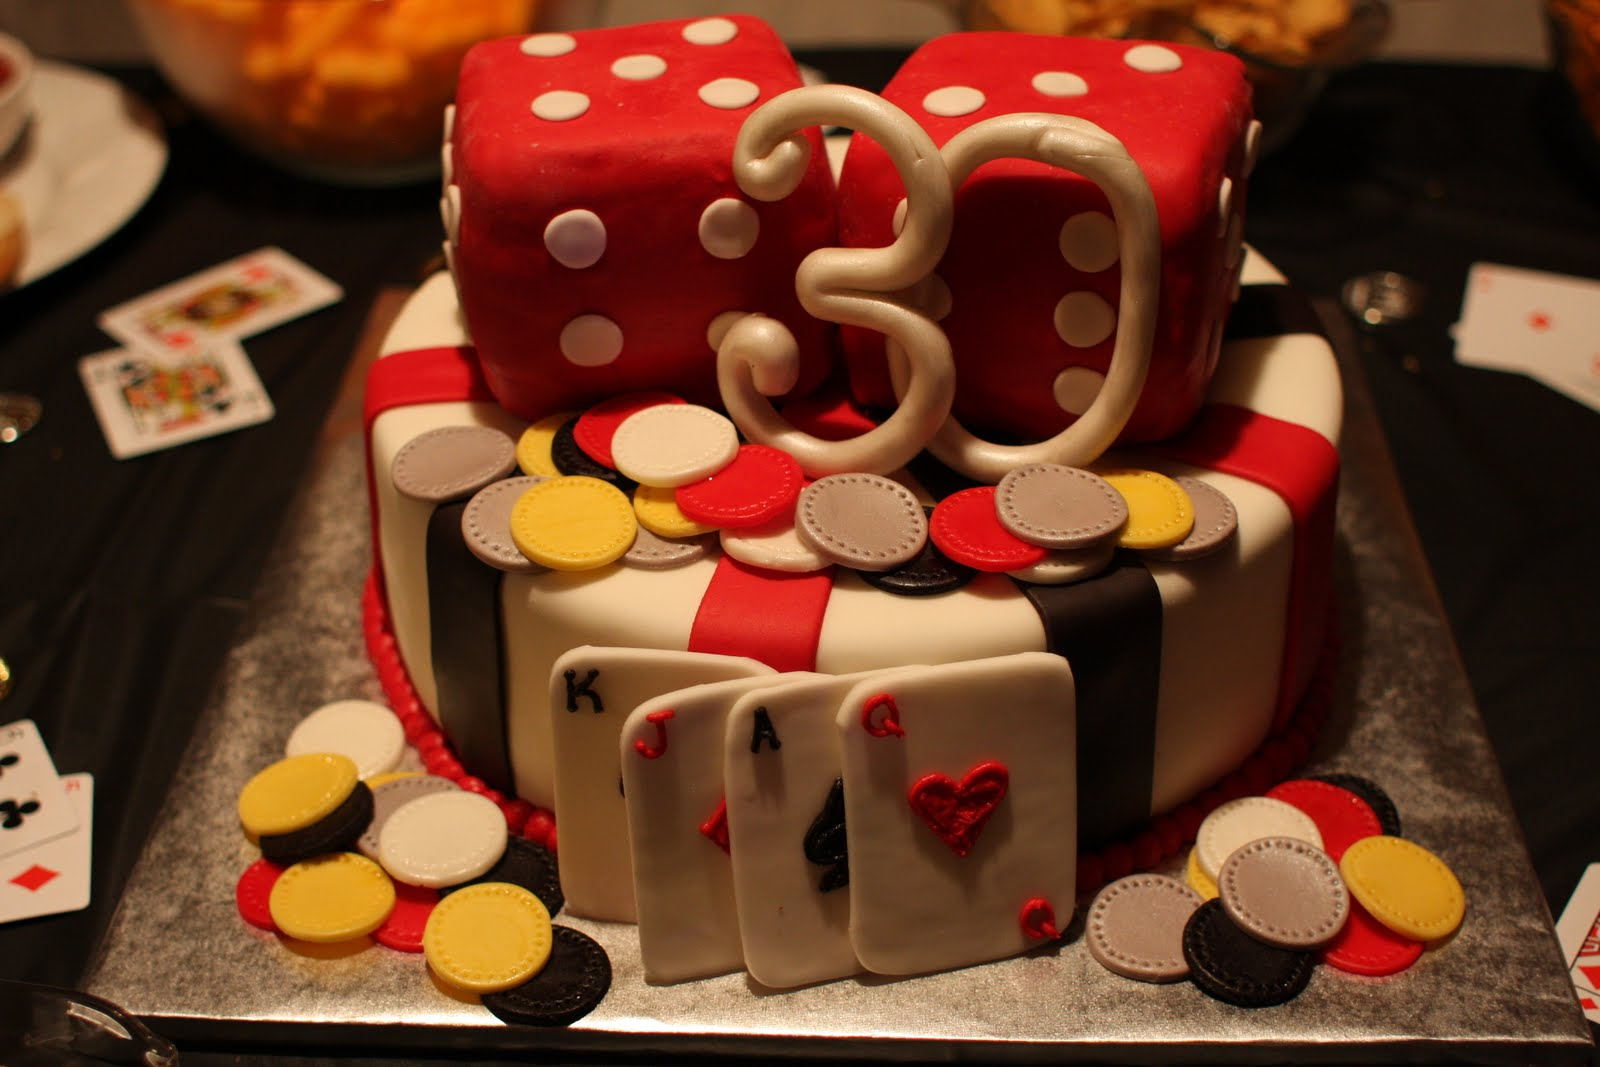 30th Birthday Cake Decorations For Him